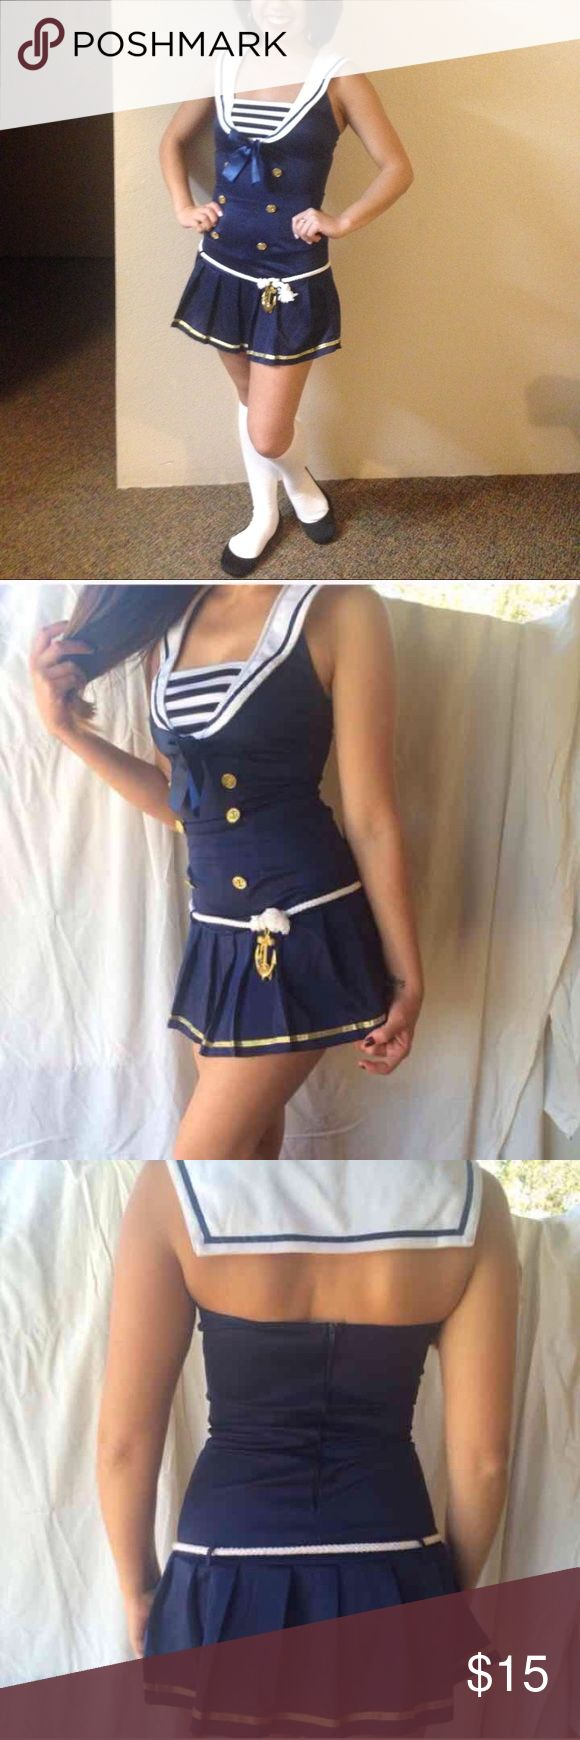 Sailor Costume Halloween costume in excellent condition. Belt and white knee high socks included. Leg Avenue Other